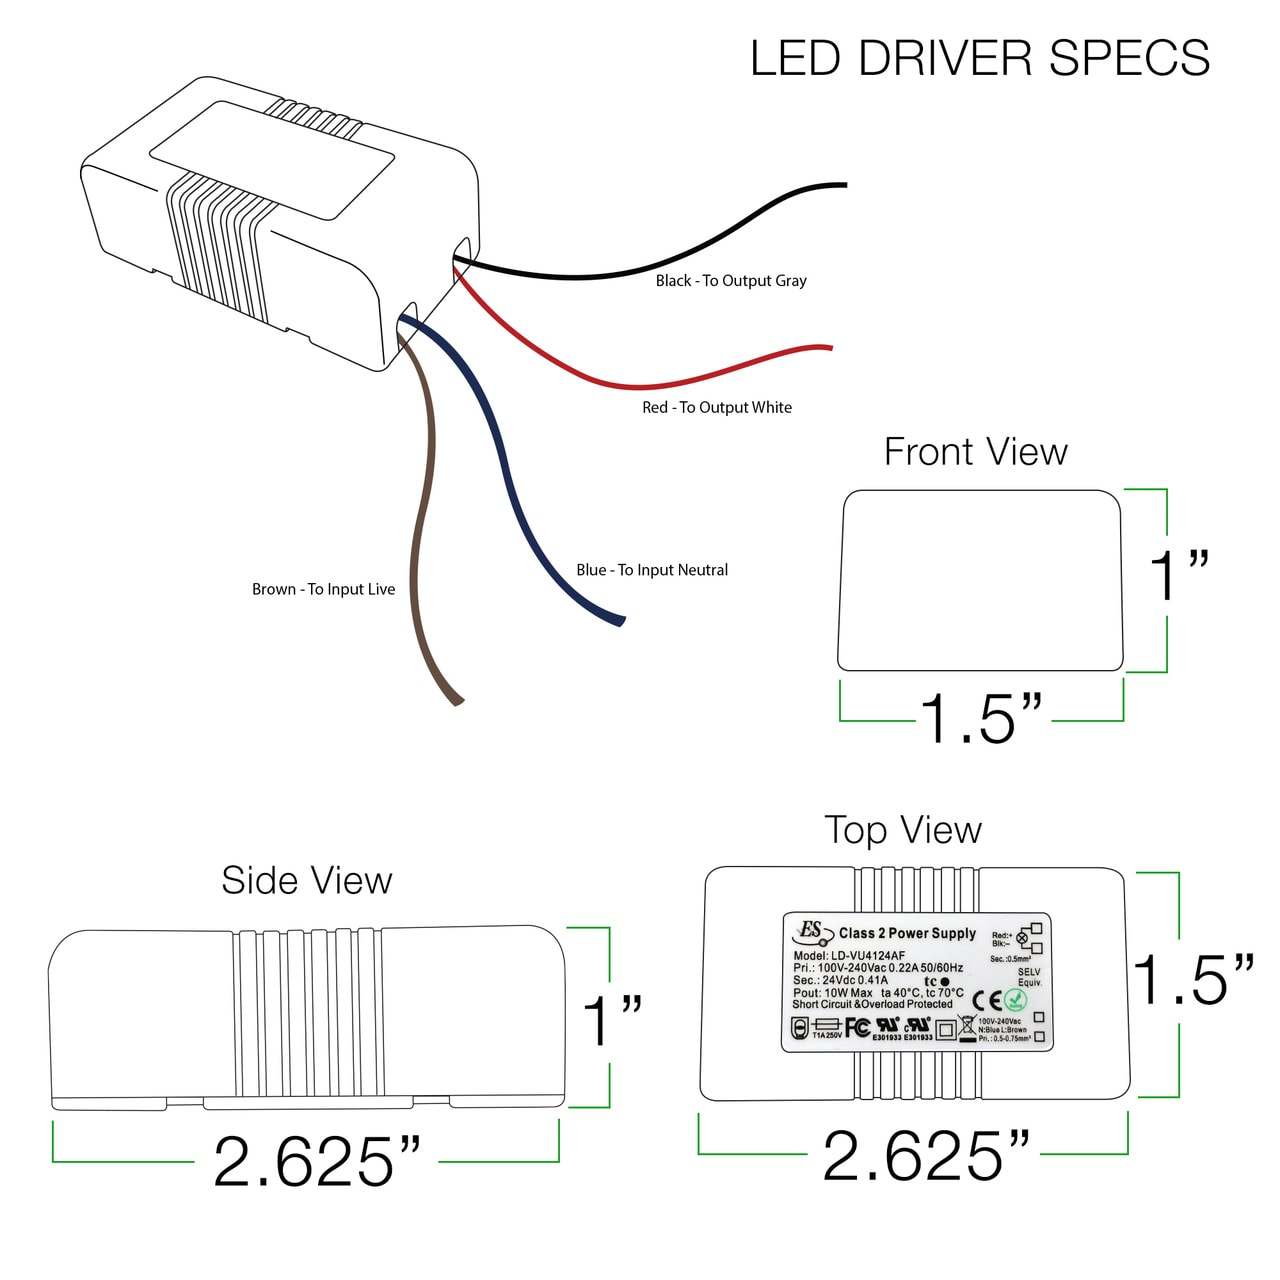 Schlage Nd80pdeu Wiring Diagram | Wiring Diagrams on